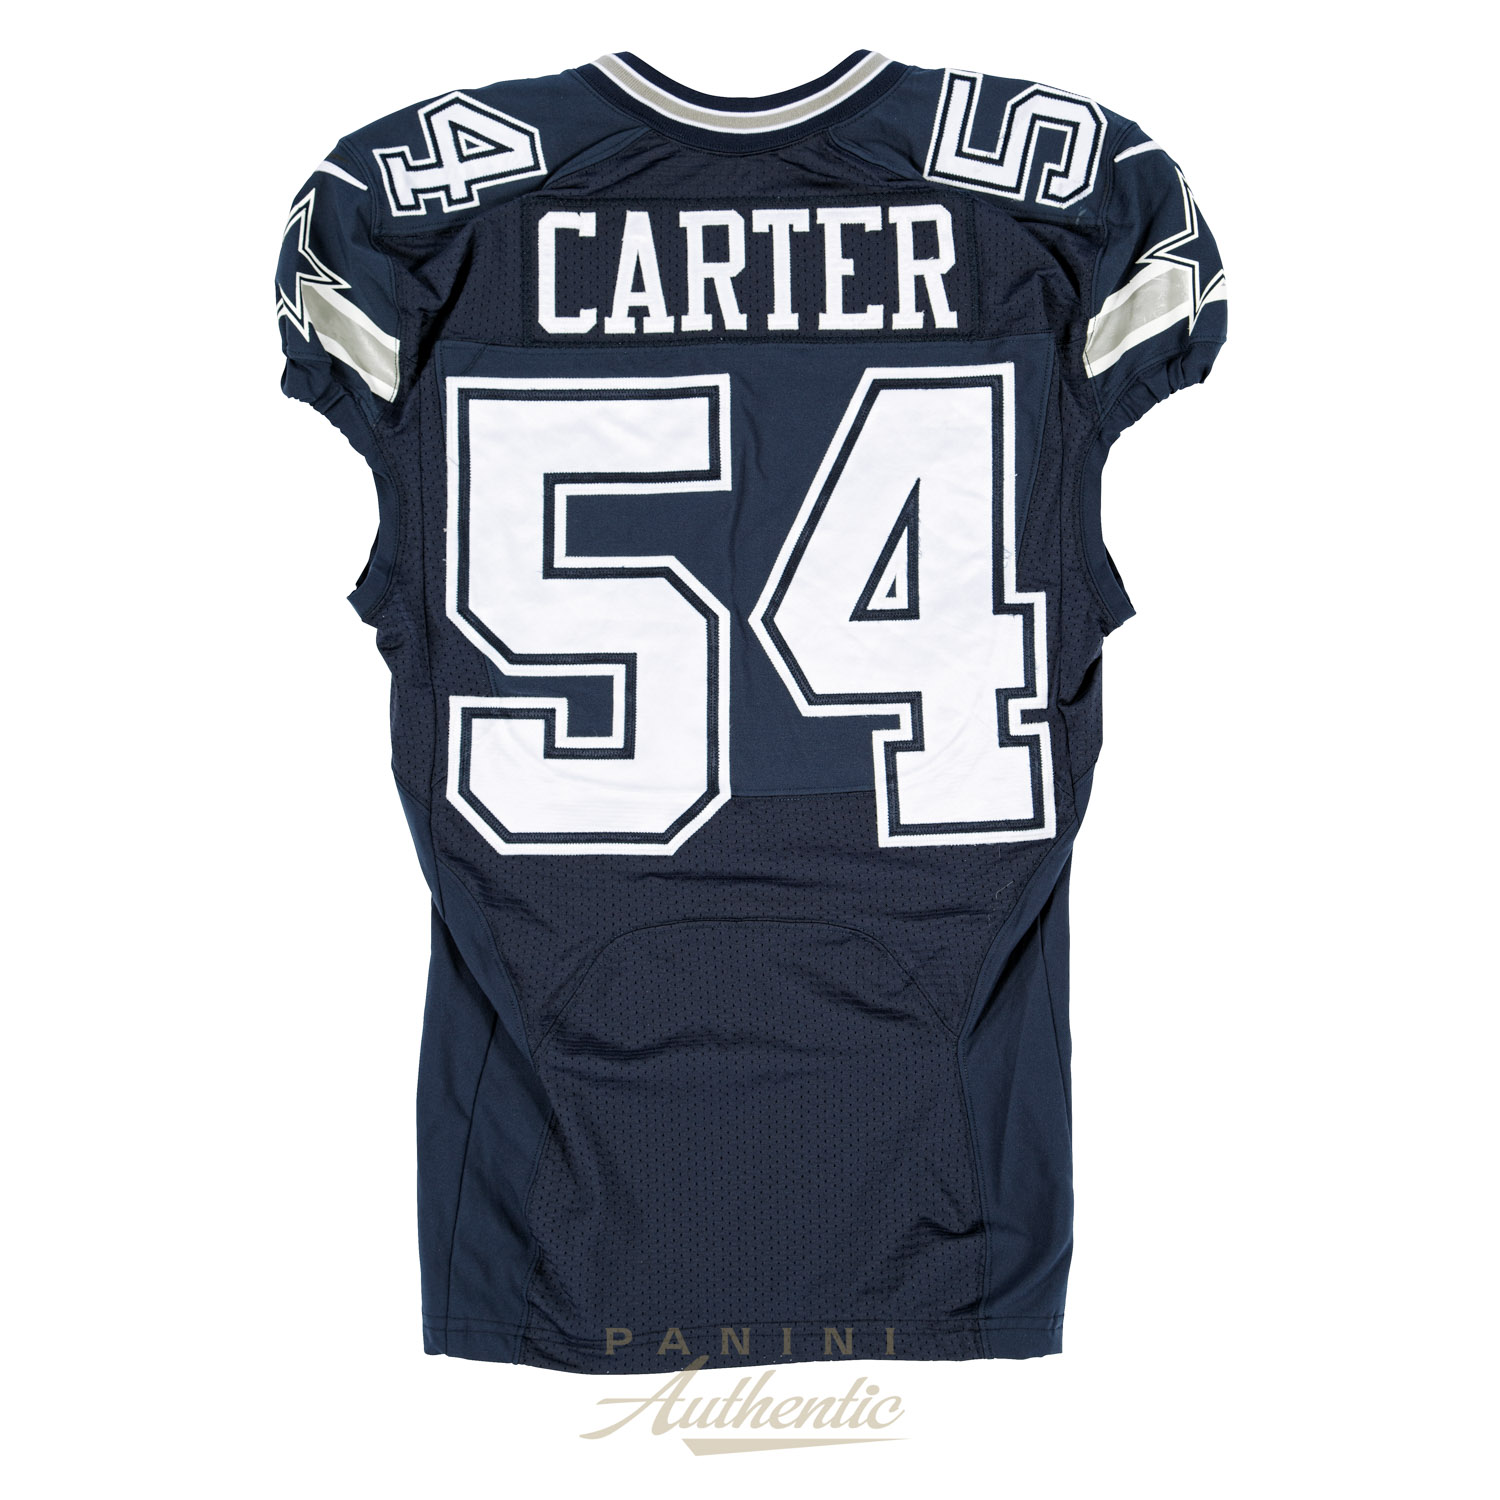 save off 91191 600ff Bruce Carter Game Worn Dallas Cowboys Jersey and Pant Set ...